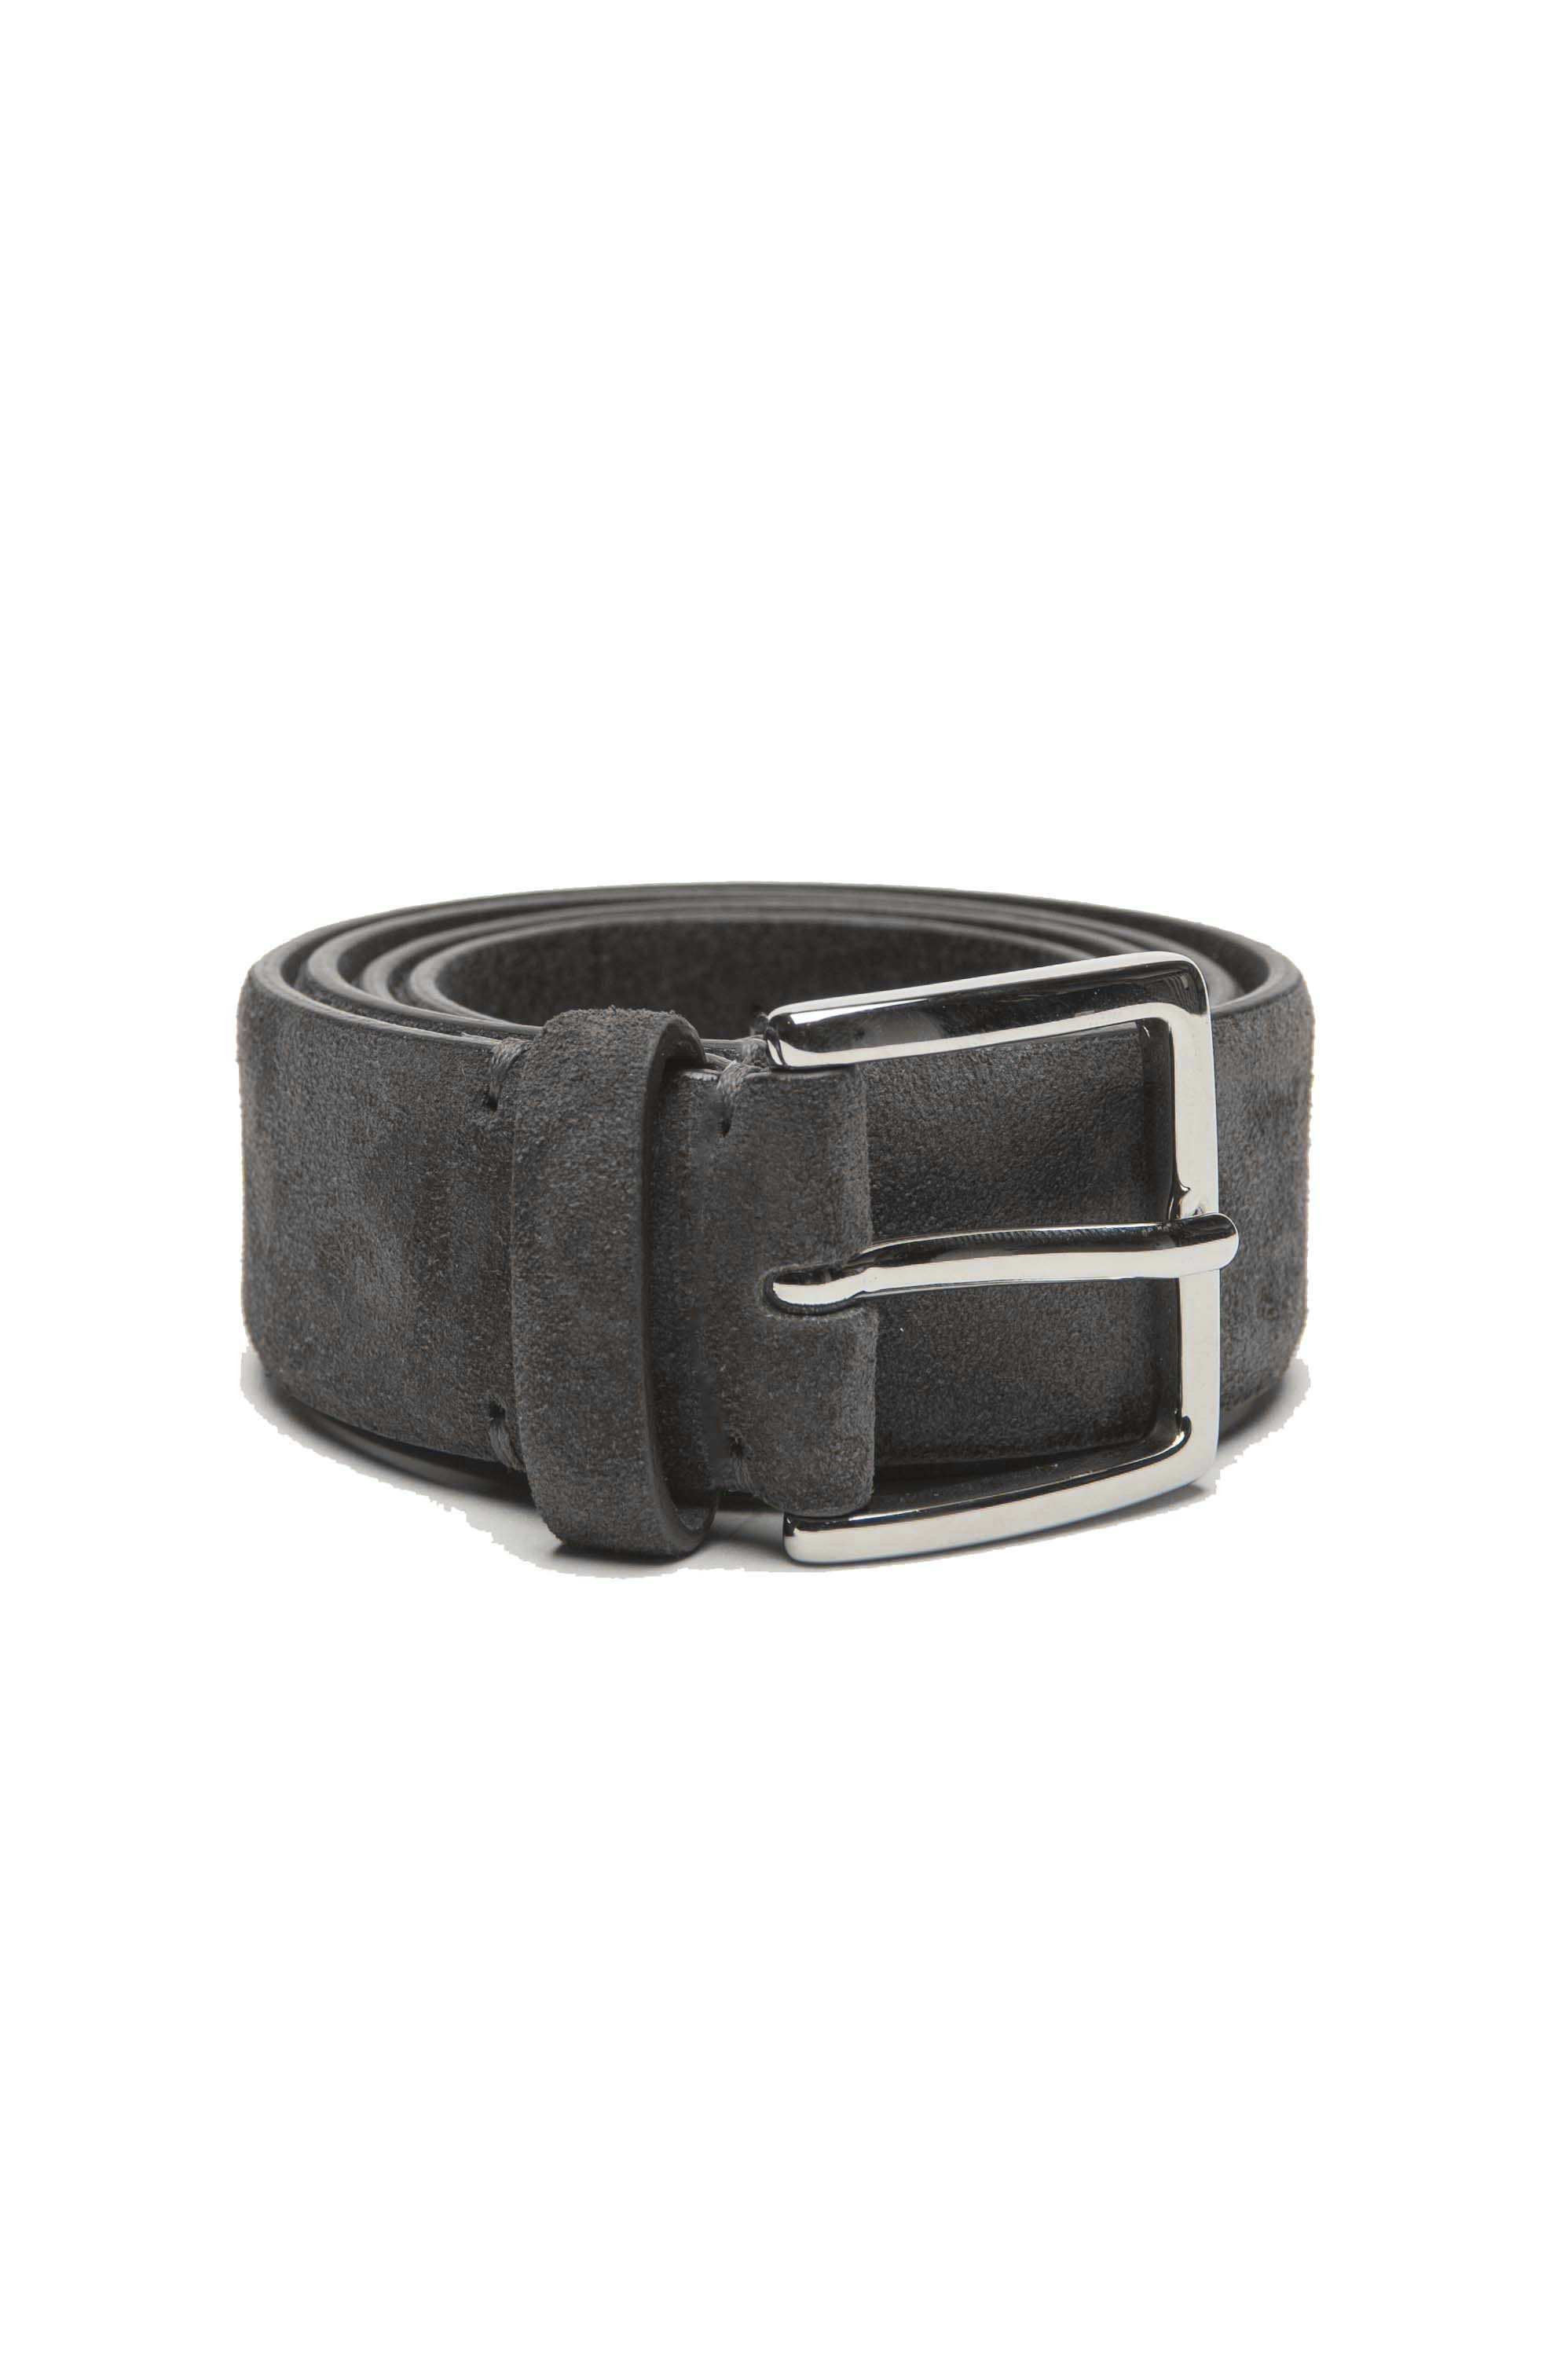 SBU 01242_19AW Classic belt in grey suede leather 1.4 inches 01